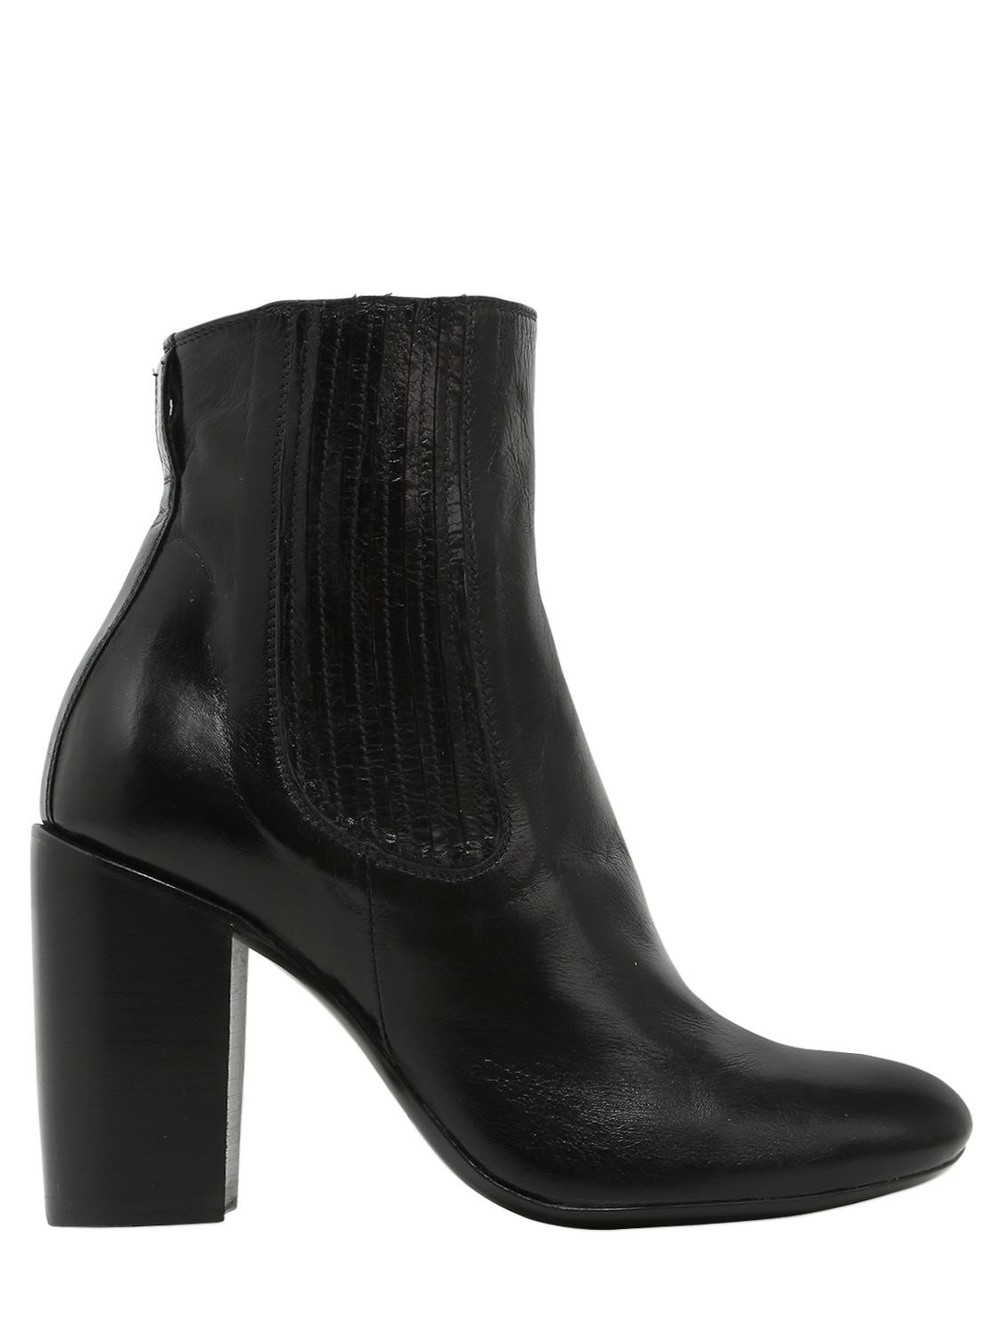 ROCCO P. 90mm Leather Ankle Boots in black